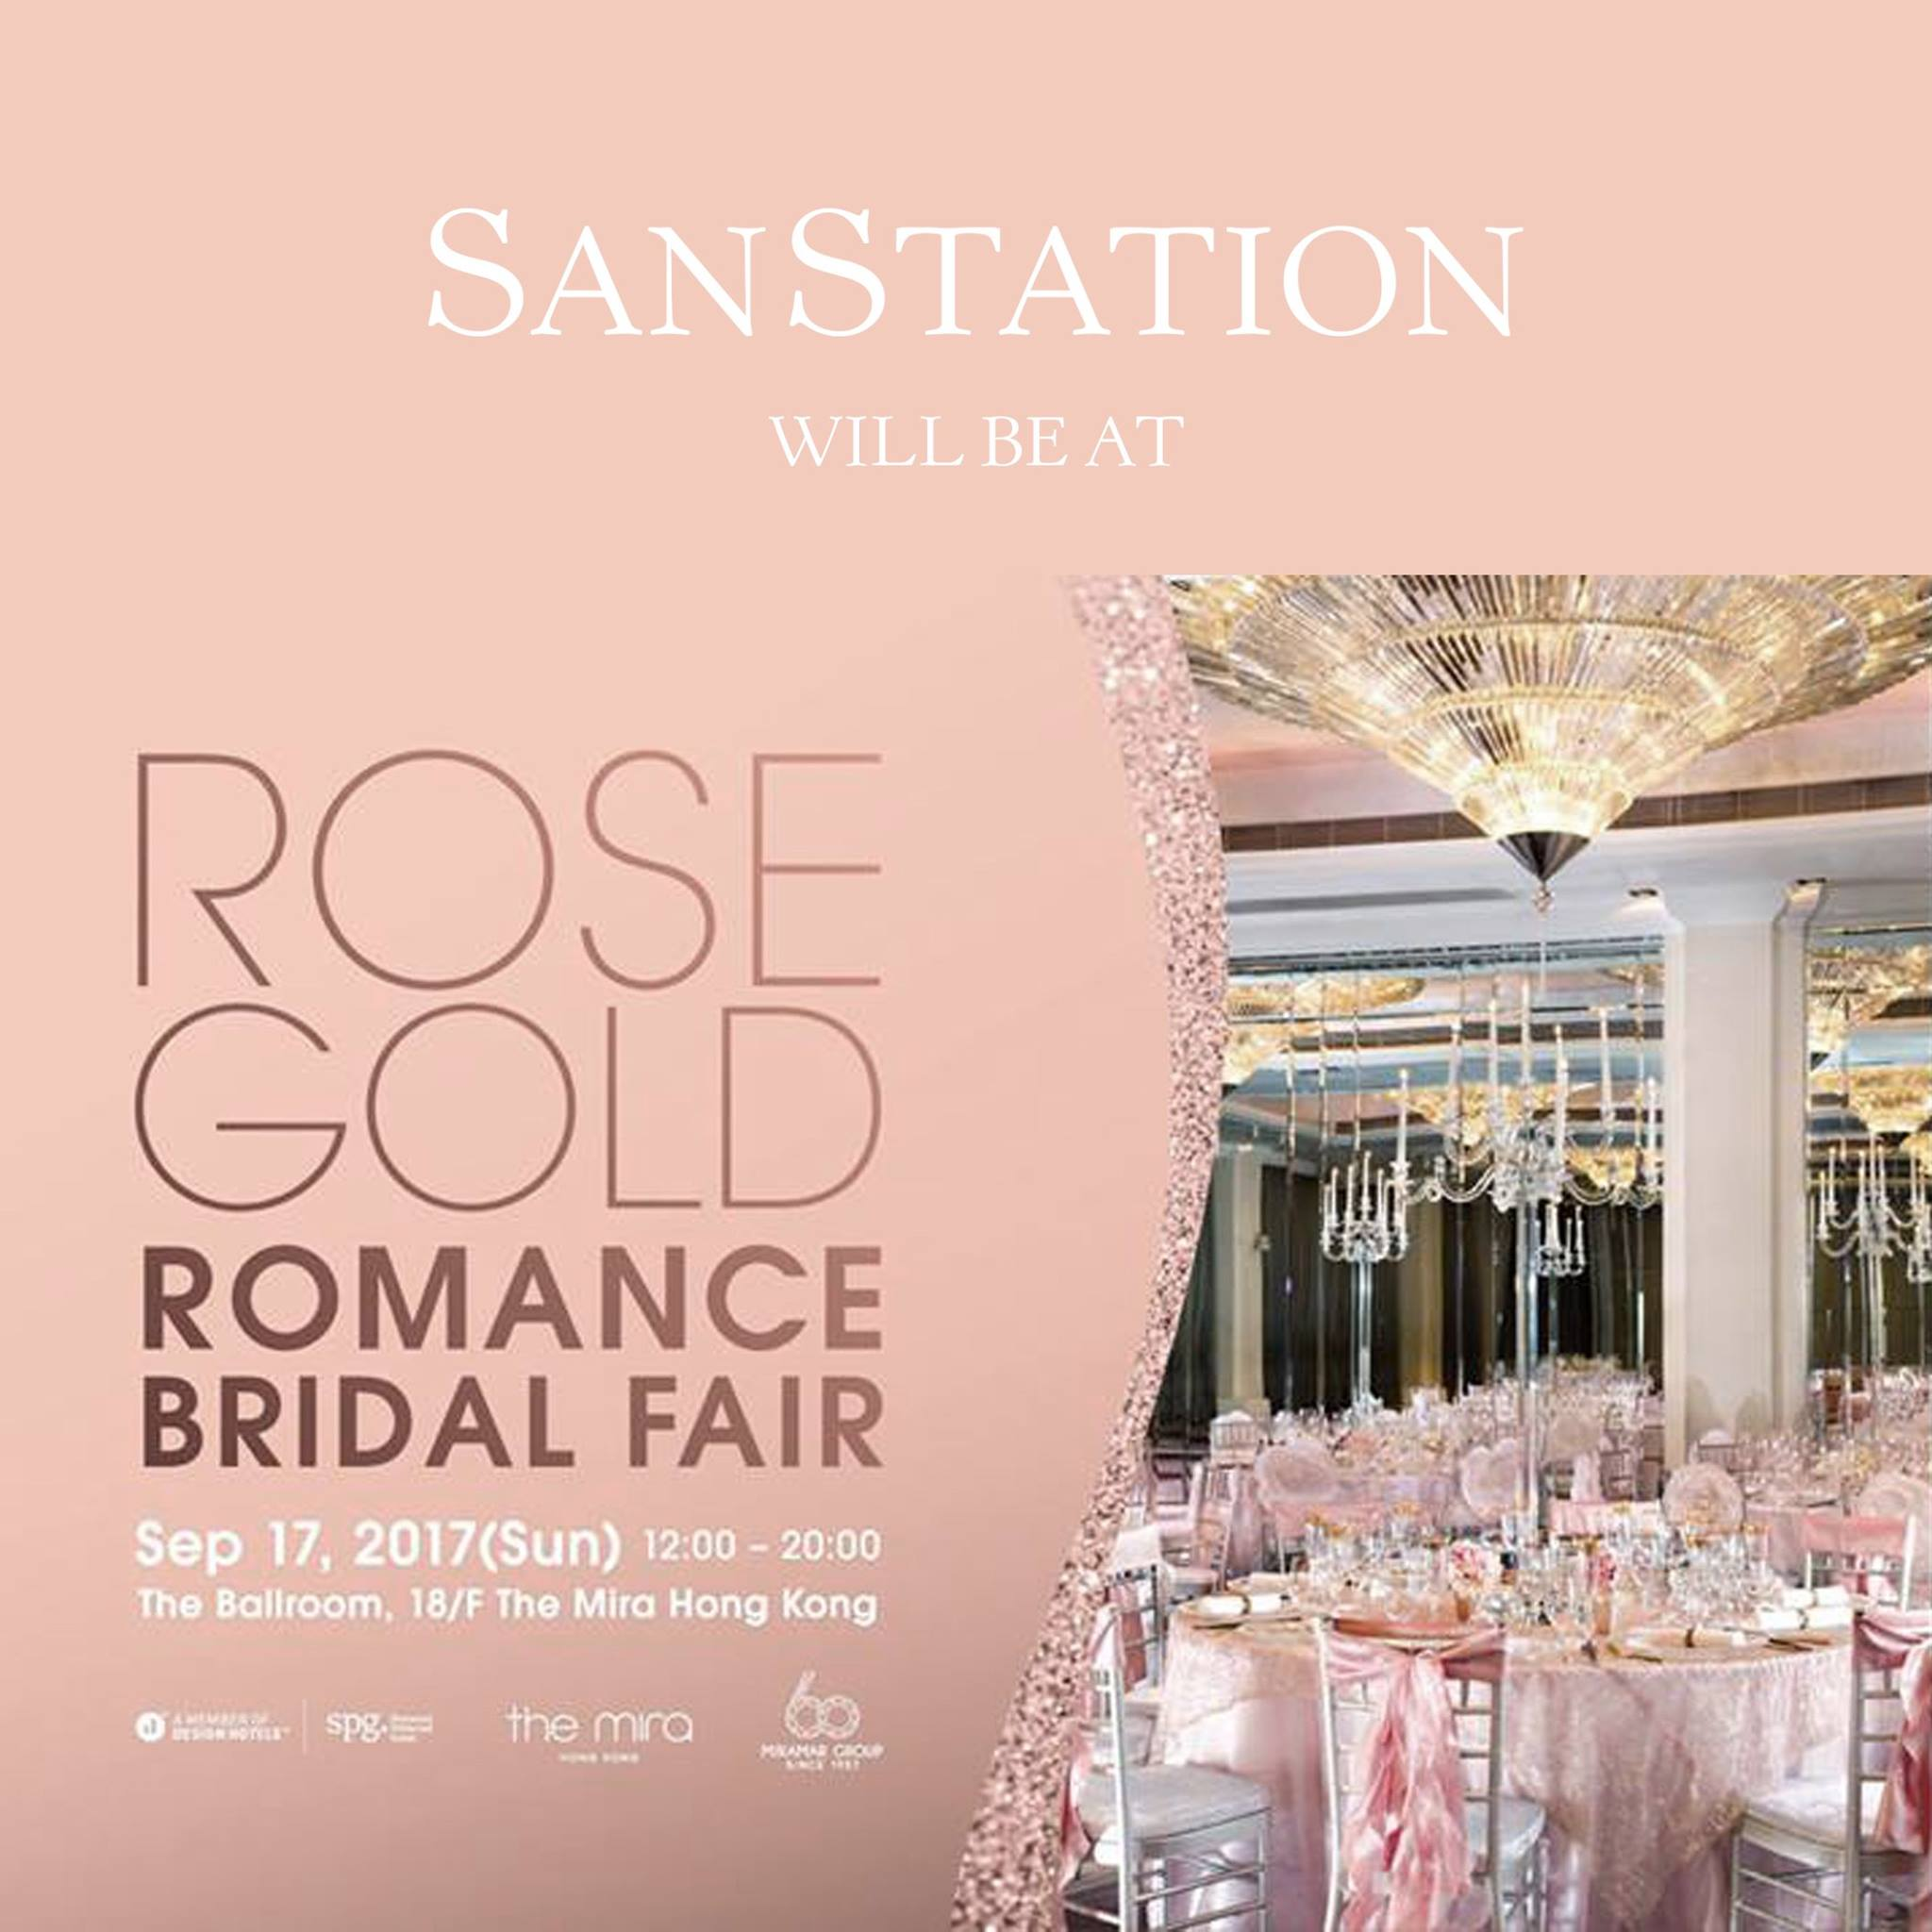 Rose Gold Romance Bridal Fair at The Mira Hong Kong